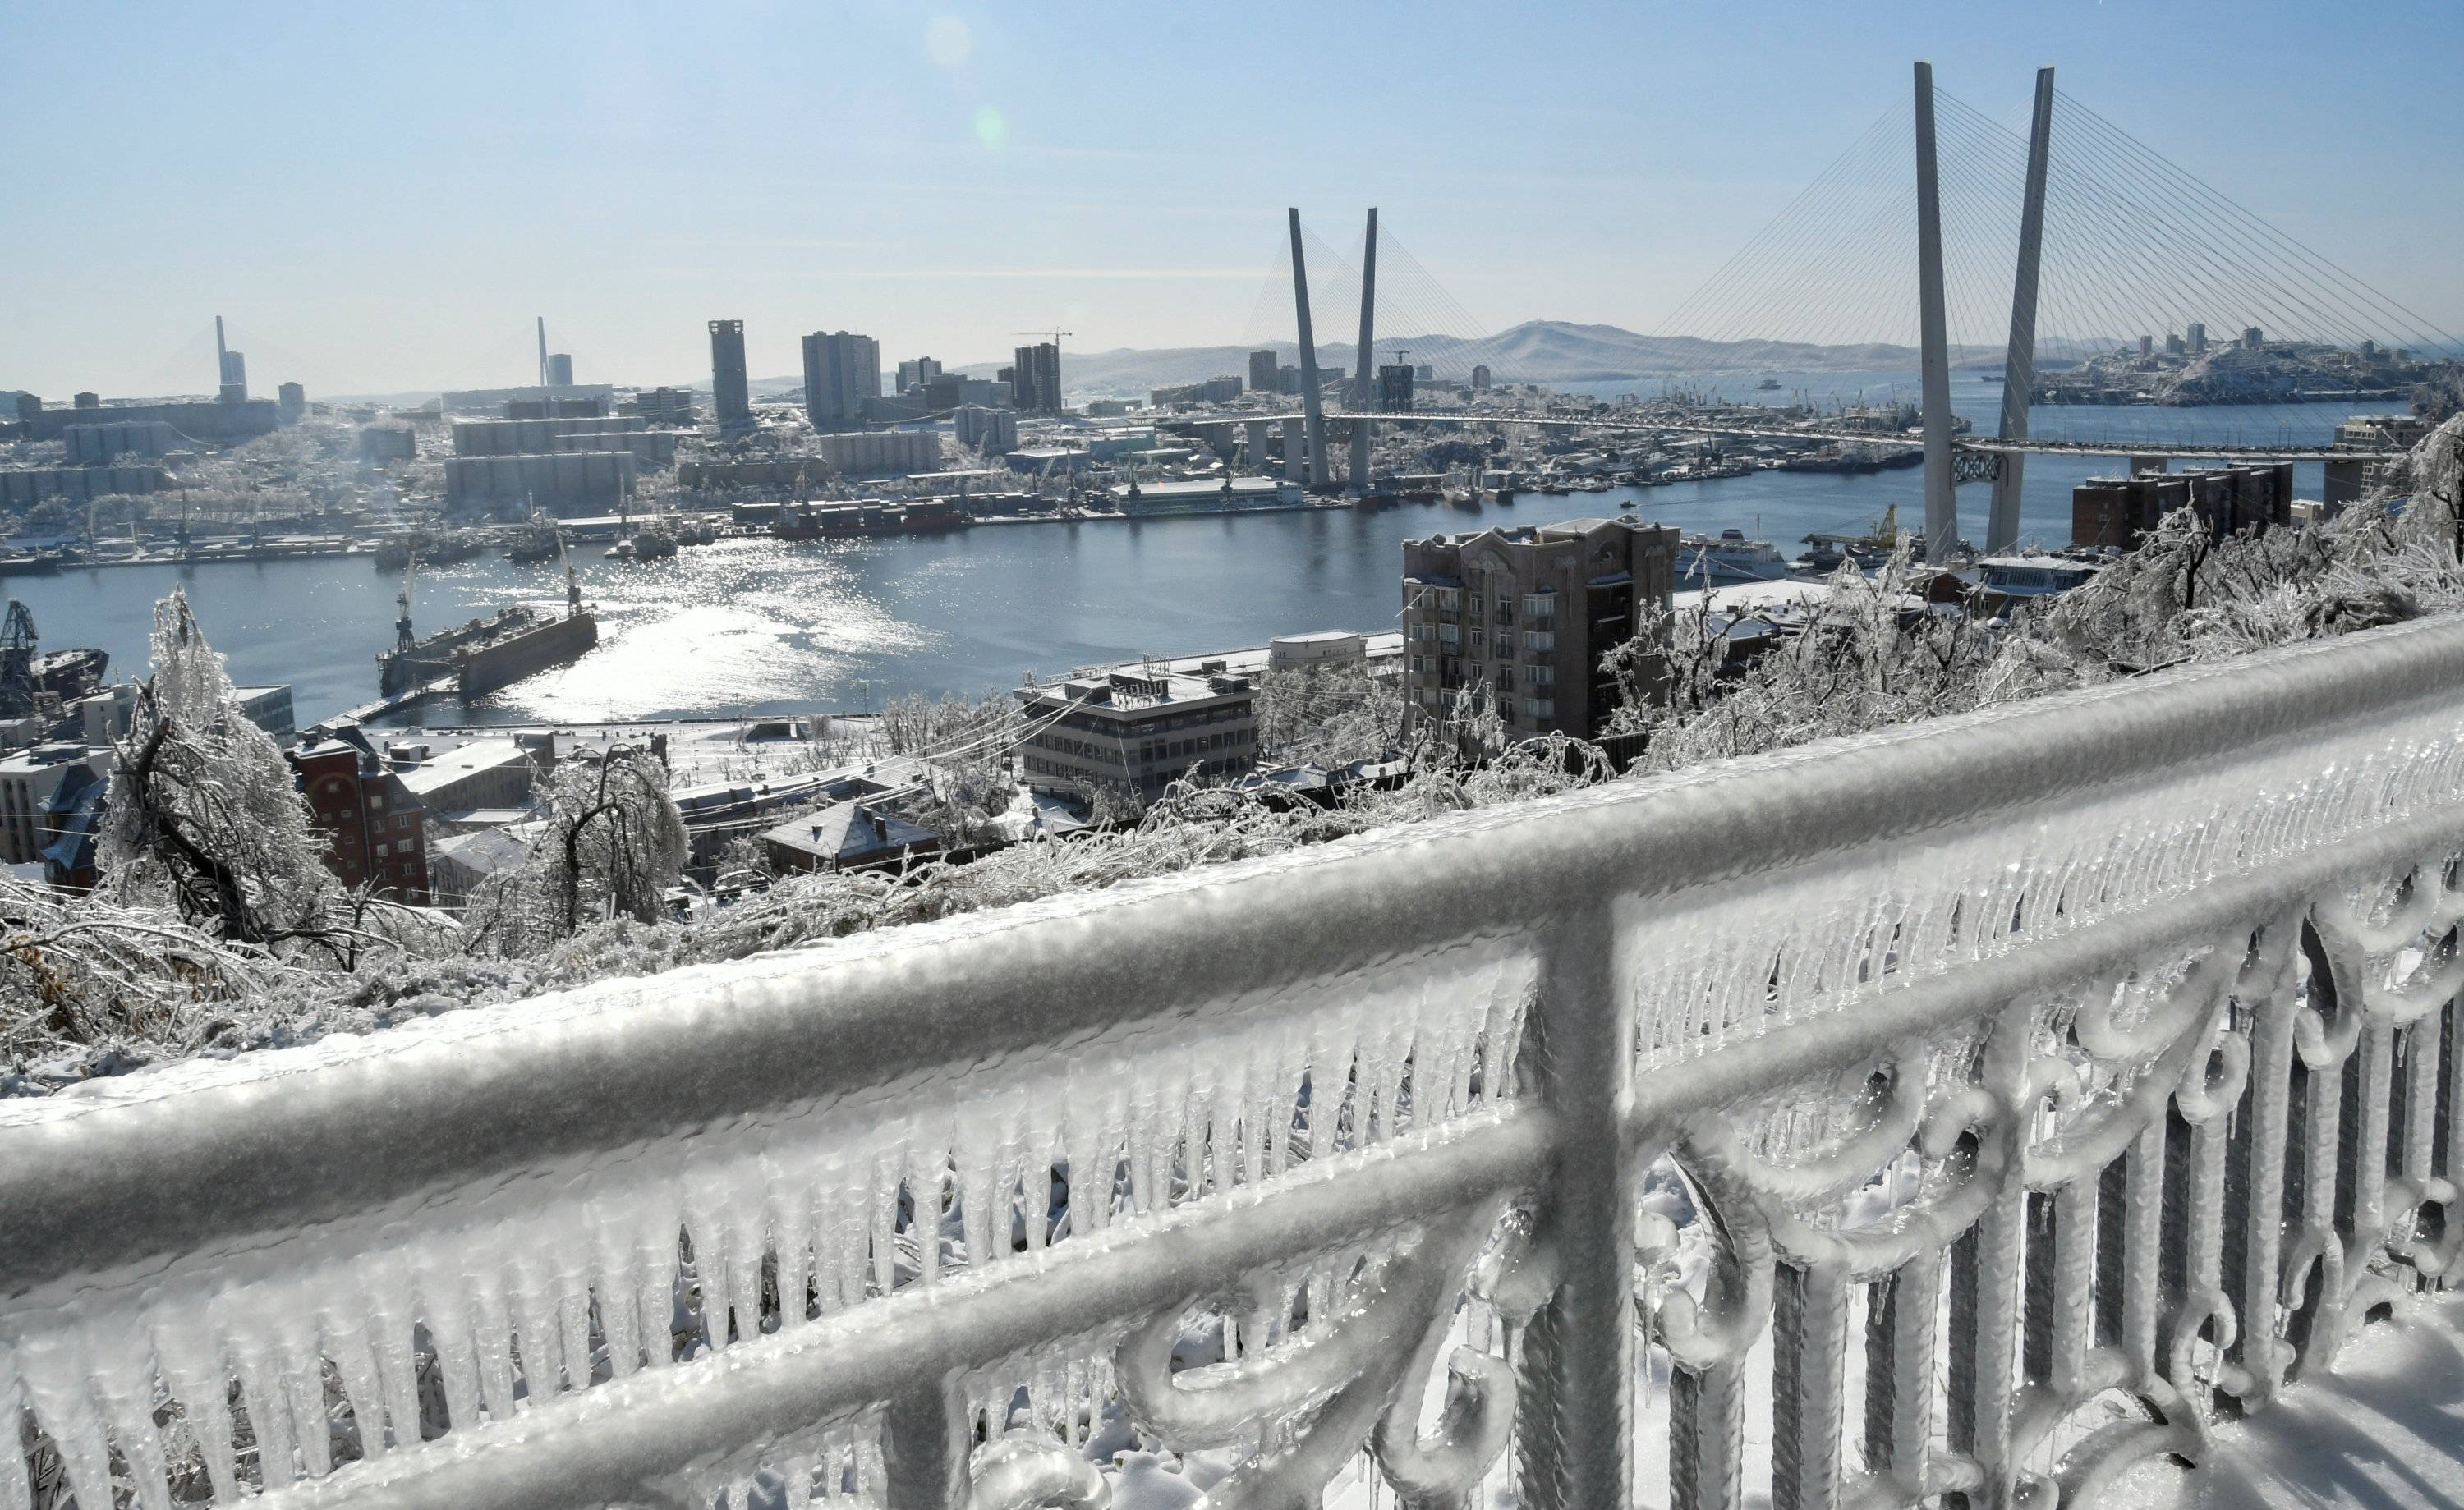 A fence is covered with ice after freezing rain, as a bridge over the Golden Horn bay is seen in the background, in Vladivostok, Russia, Nov. 21, 2020. (Reuters Photo)